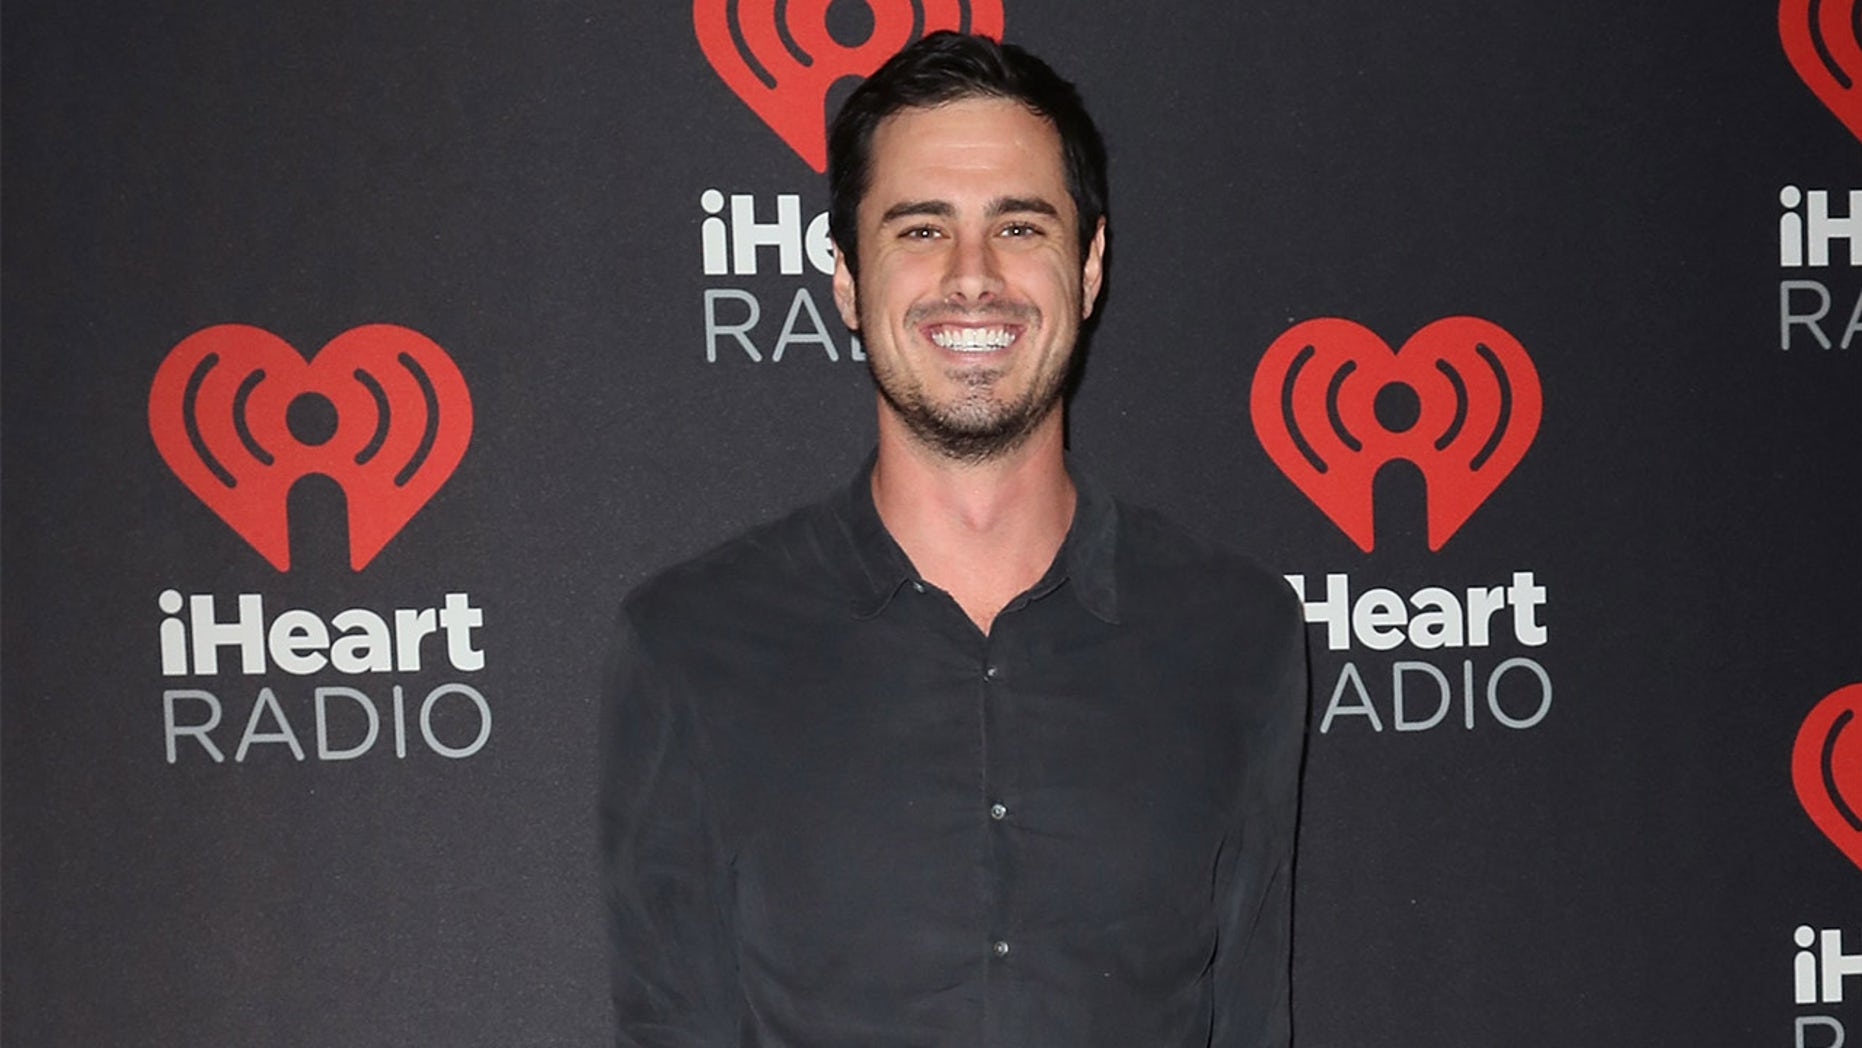 Ben Higgins attends the 2016 iHeartRadio Music Festival Night 1 at T-Mobile Arena in Las Vegas and say former 'Bachelor' star Amanda Stanton is not in the best situation following her domestic assault arrest.